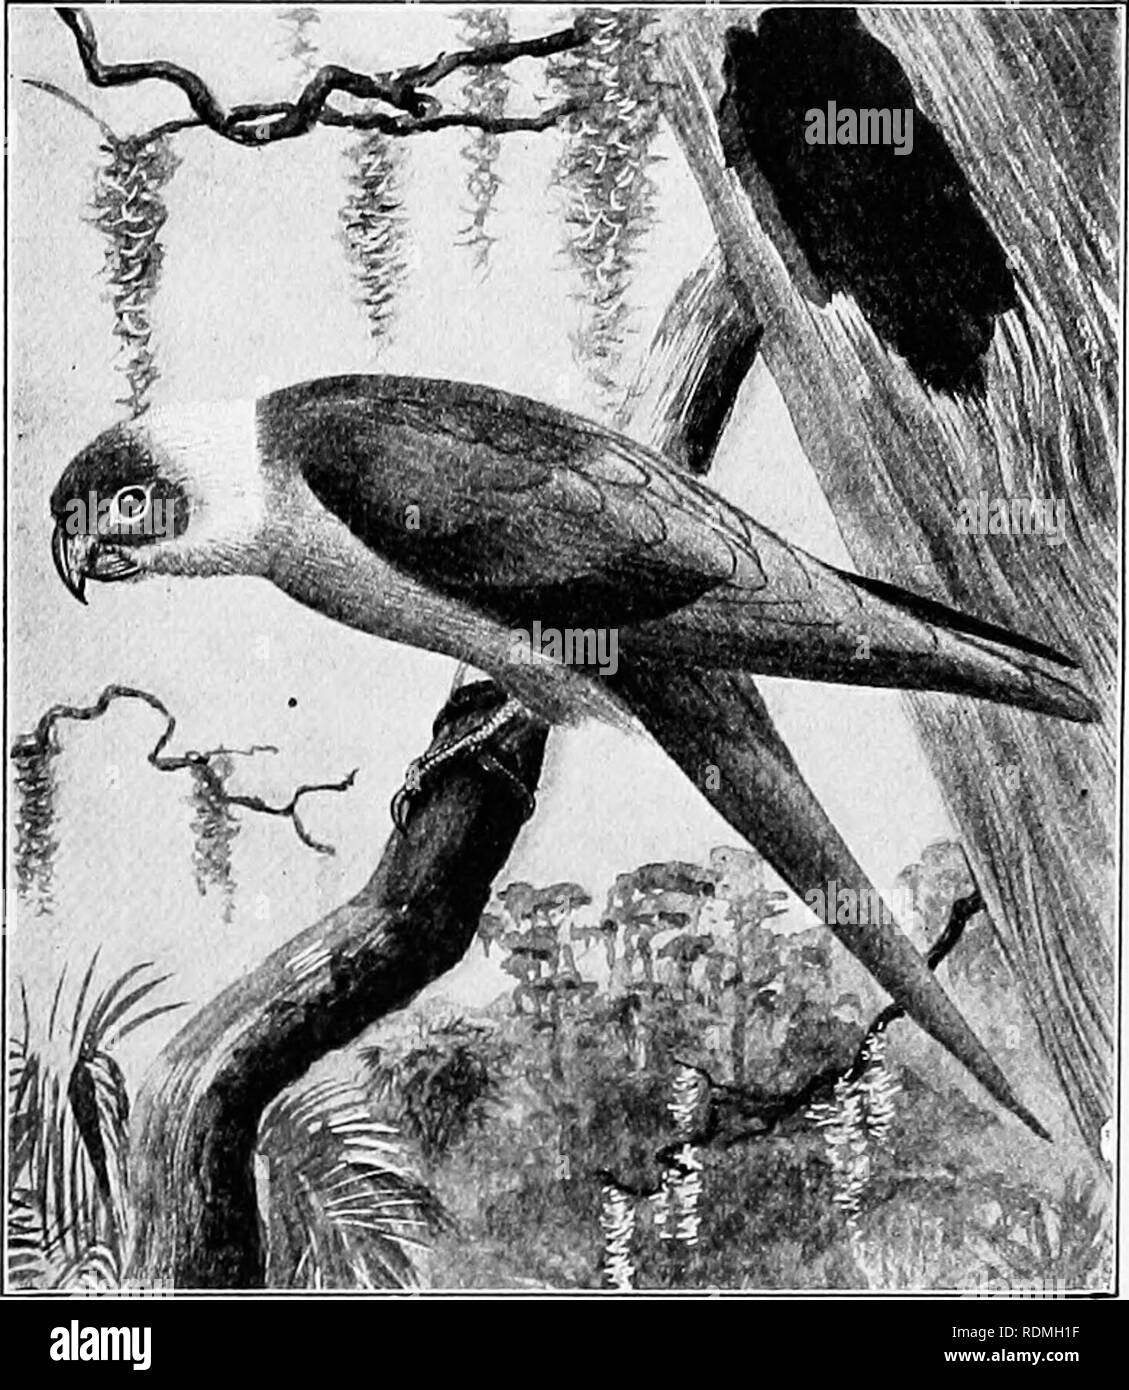 . The American natural history : a foundation of useful knowledge of the higher animals of North America . Natural history. CHAPTER XX THE ORDER OF PARROTS AND MACAWS PS ITT AC r The parrots, parrakeets, macaws and cocka- toos form a large group, containing in all more than 500 species. Of these, about 150 inhabit the New World, but only one species is found in the United States. South America contains the greatest number of species; Africa and Asia are but poorly supplied, and Europe has none. The widest departures from the standard types are found in New Zealand and Australia.. Drawn by Edmu - Stock Image